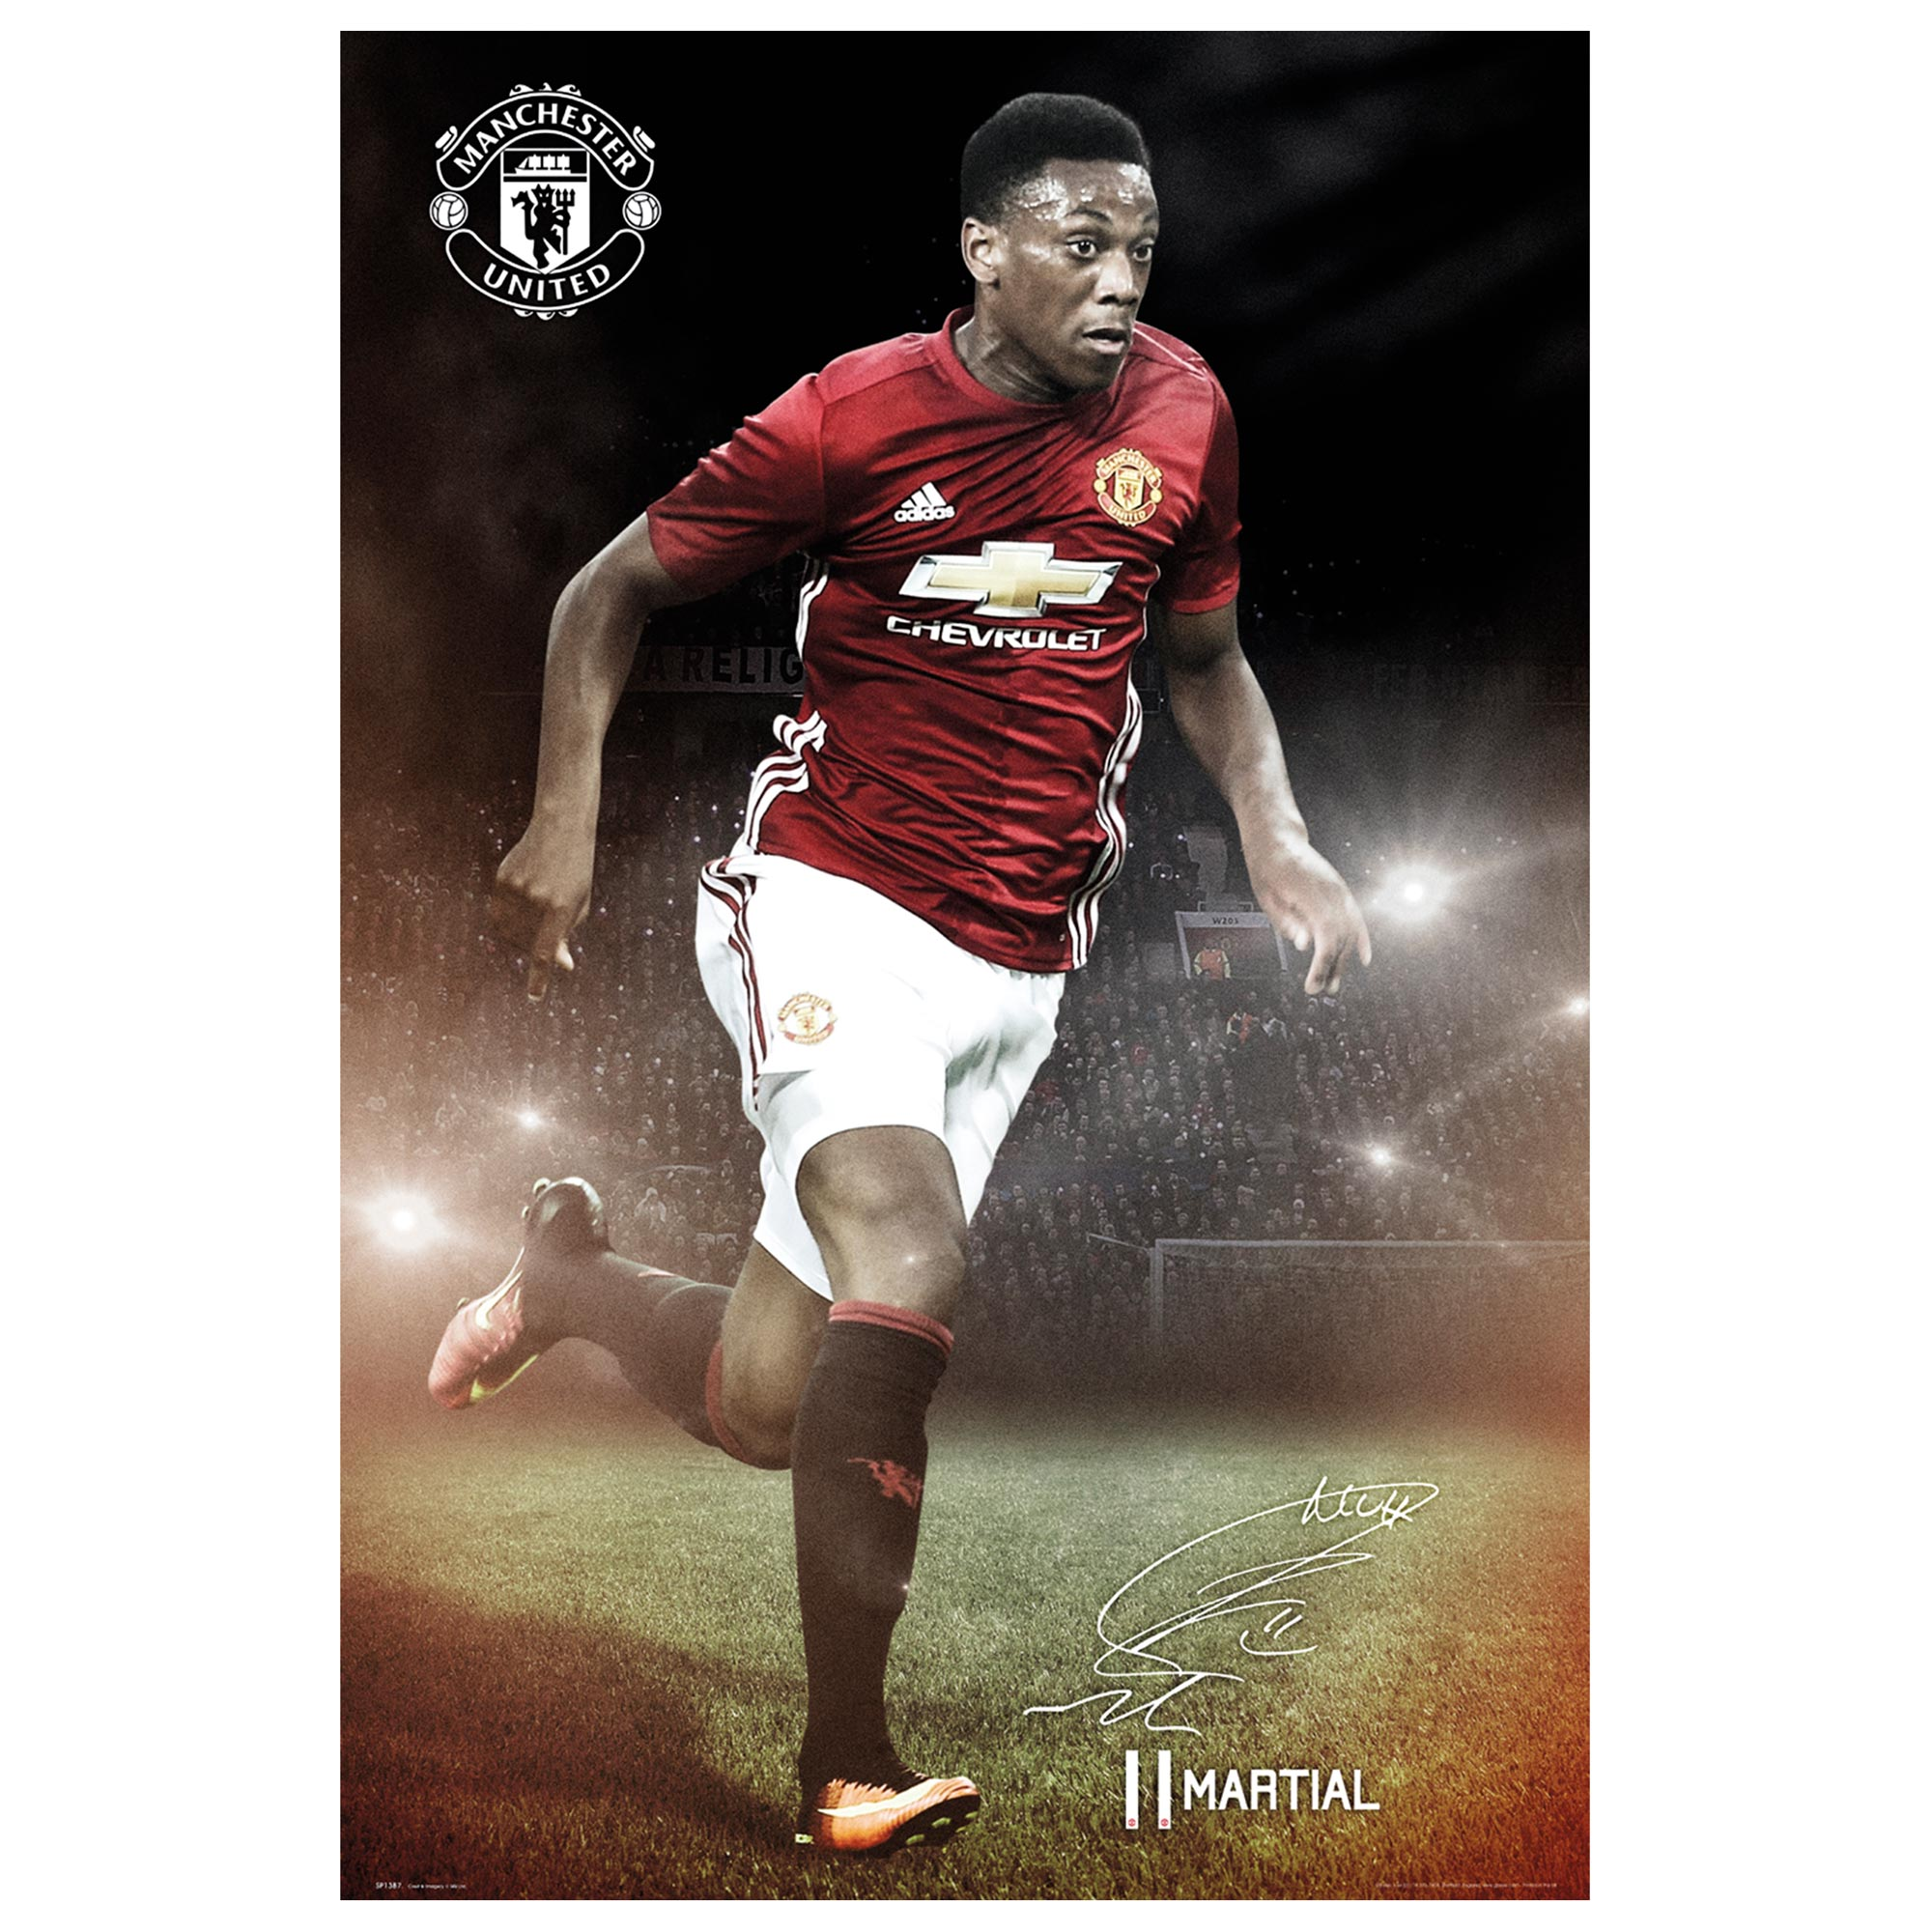 Manchester United 16-17 Martial Poster - 61 x 92cm